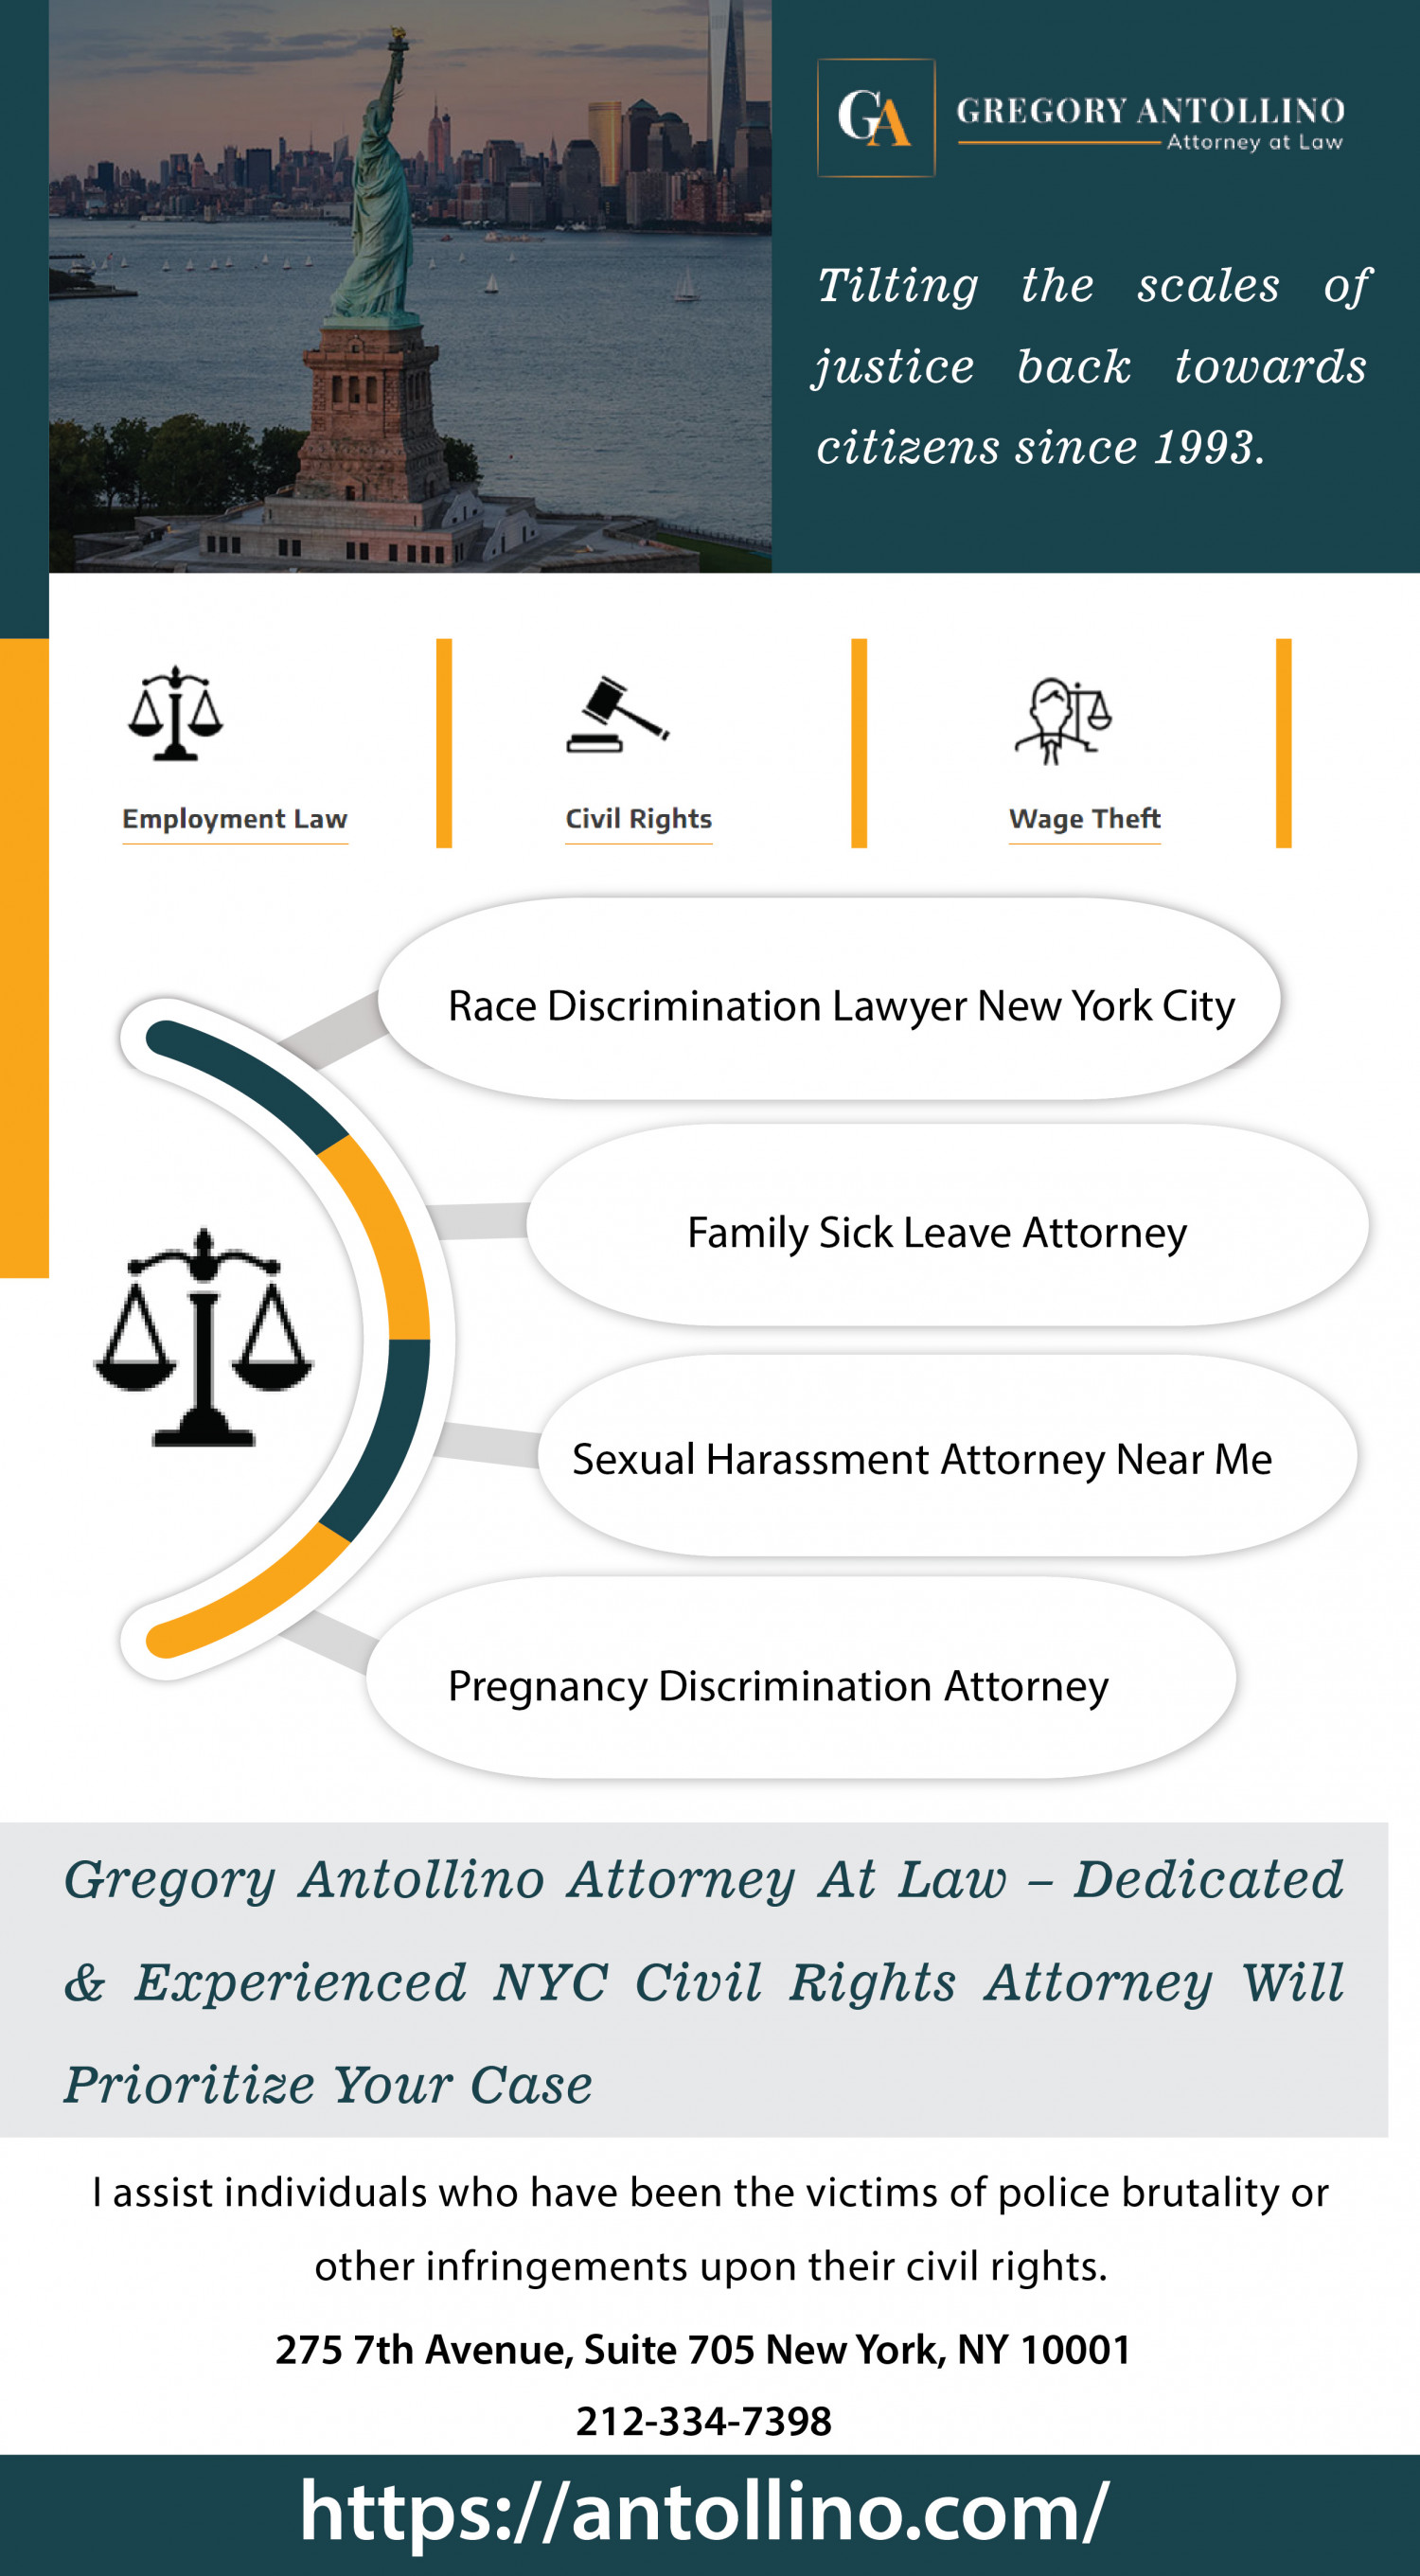 Sexual Harassment Attorney Near Me Infographic